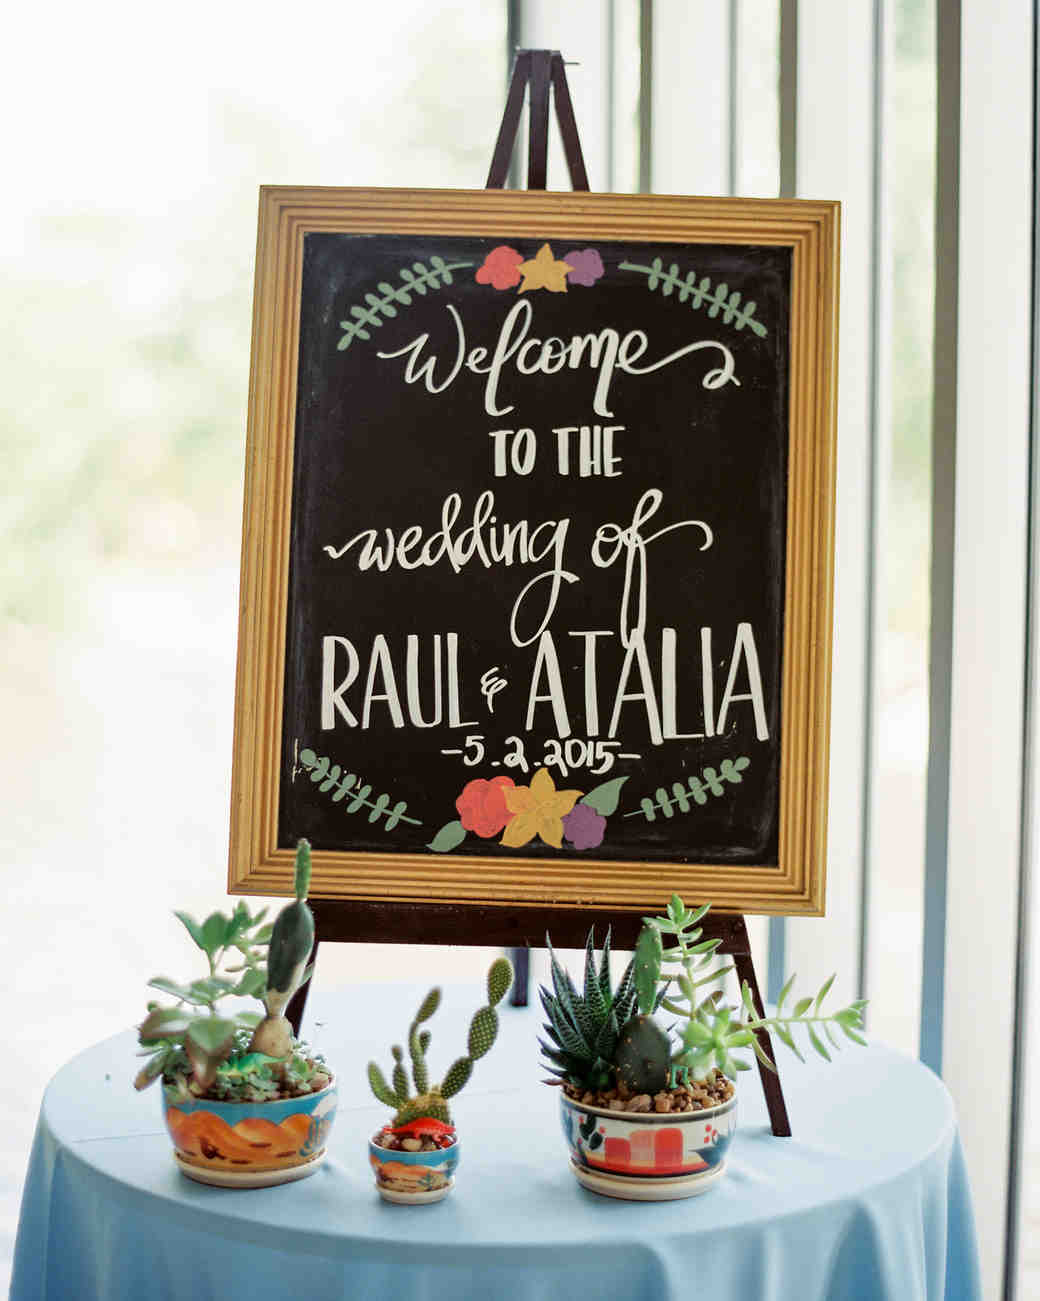 atalia-raul-wedding-sign-64-s112395-1215.jpg